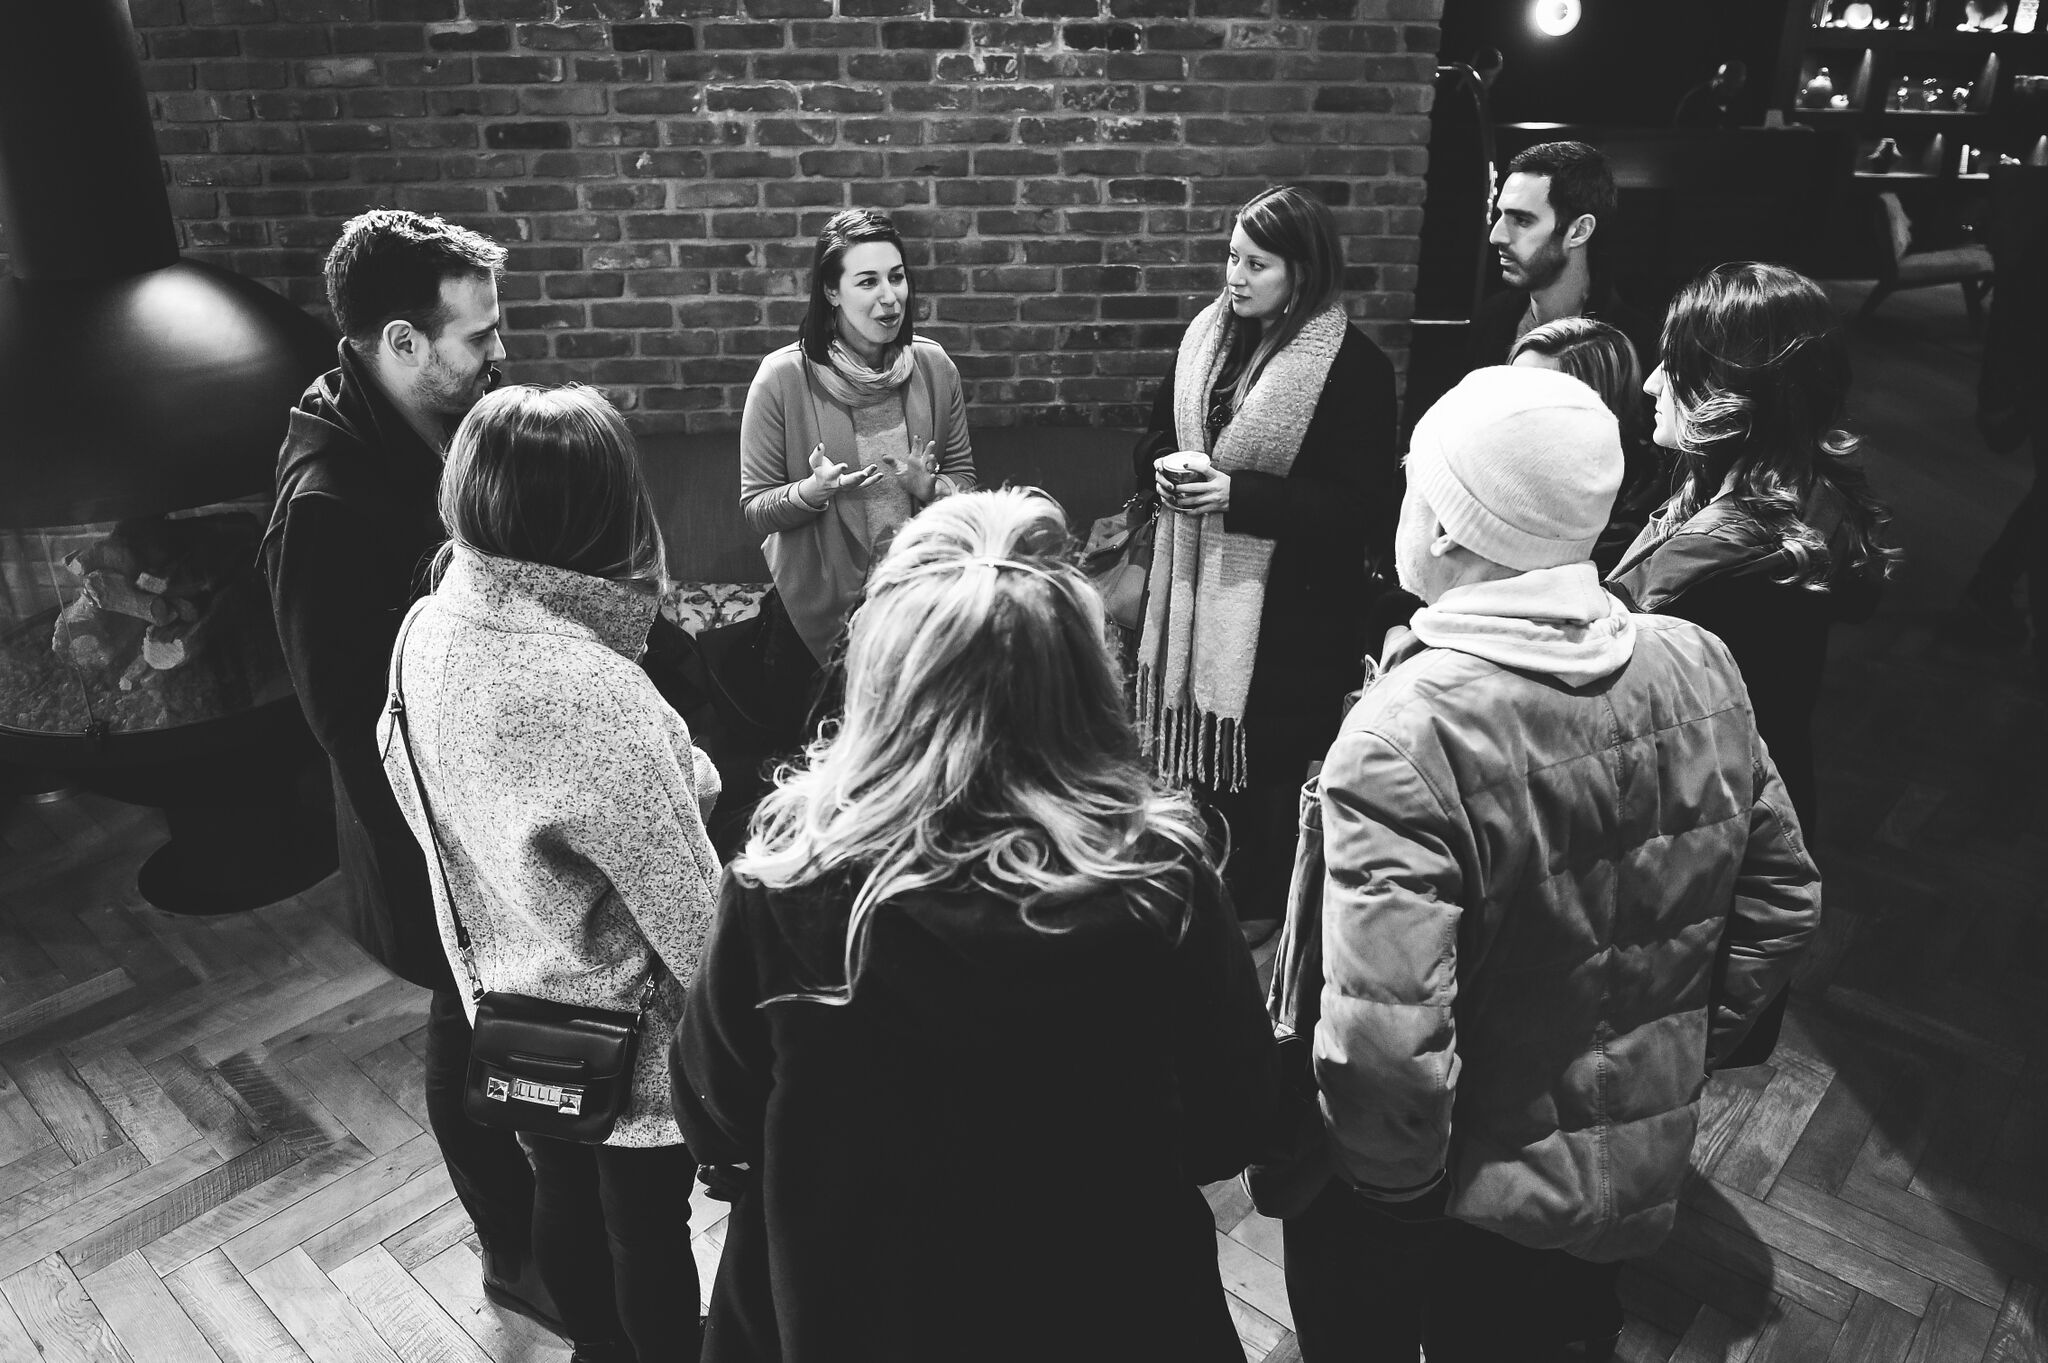 10 Team Building Icebreakers About Food And Why To Ask Them: our guides always start with an ice breaker